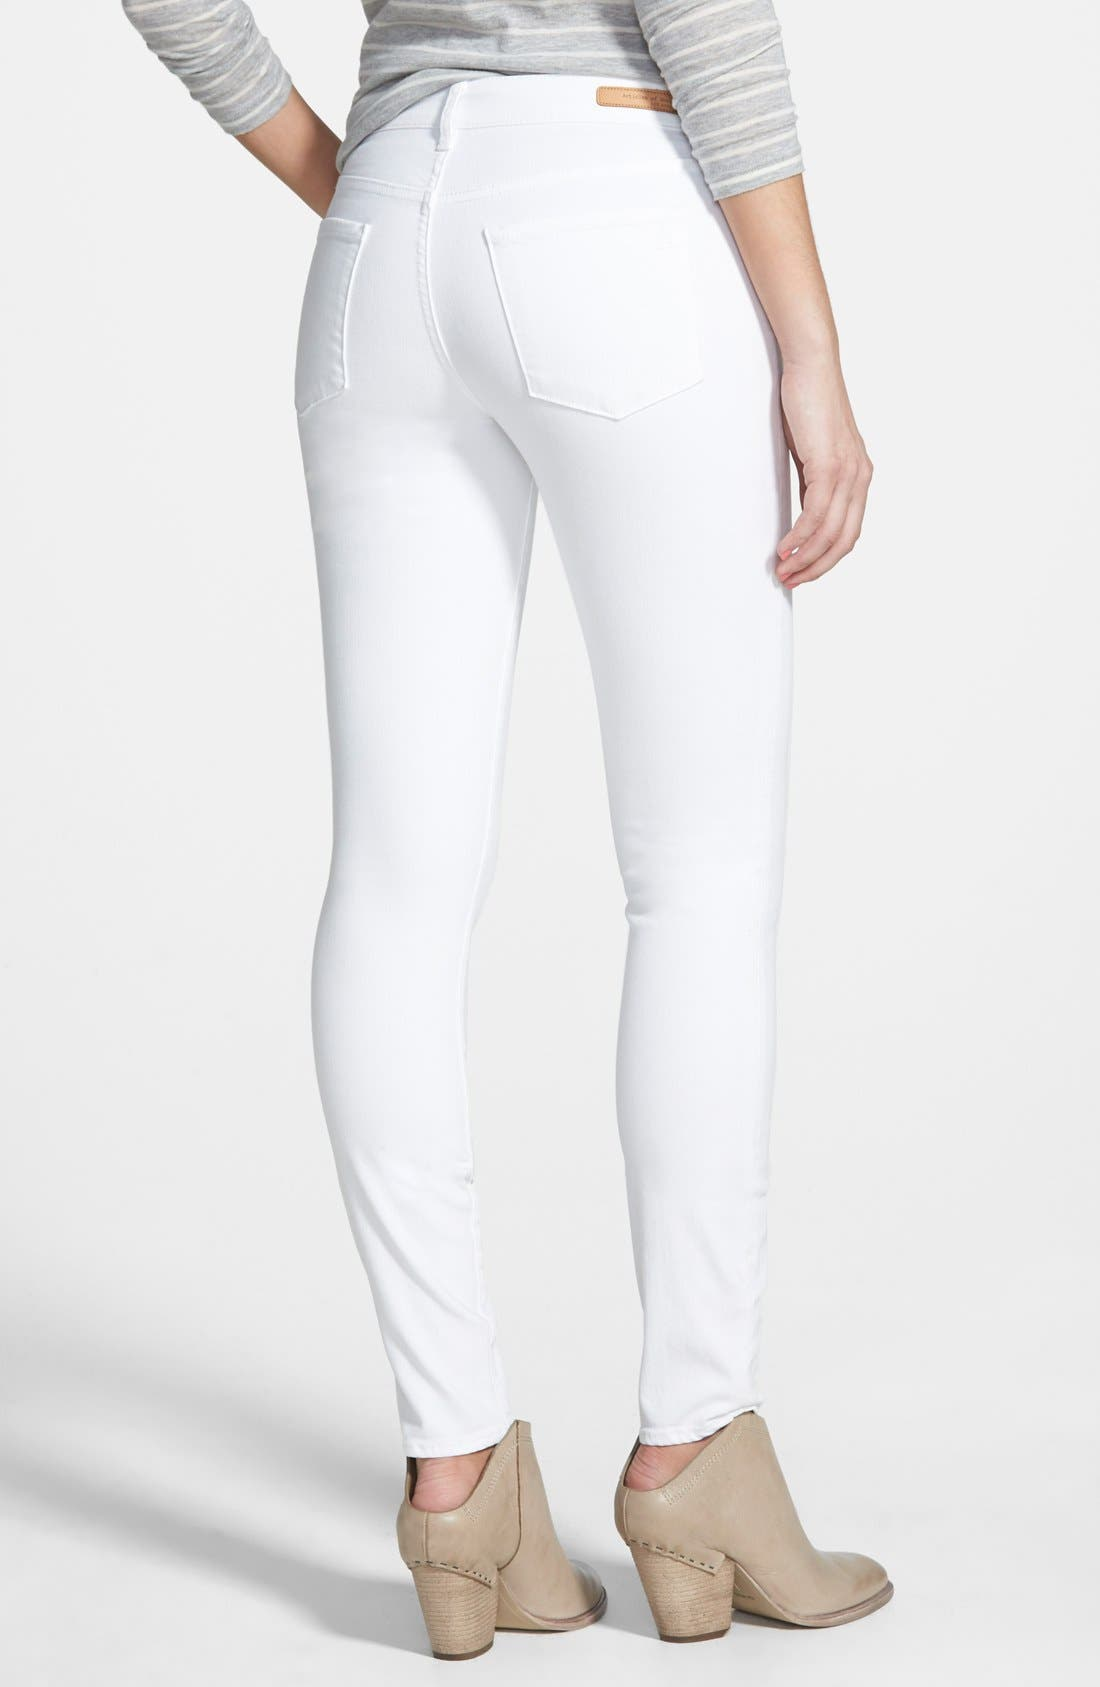 Alternate Image 2  - Articles of Society 'Sarah' Skinny Jeans (White)